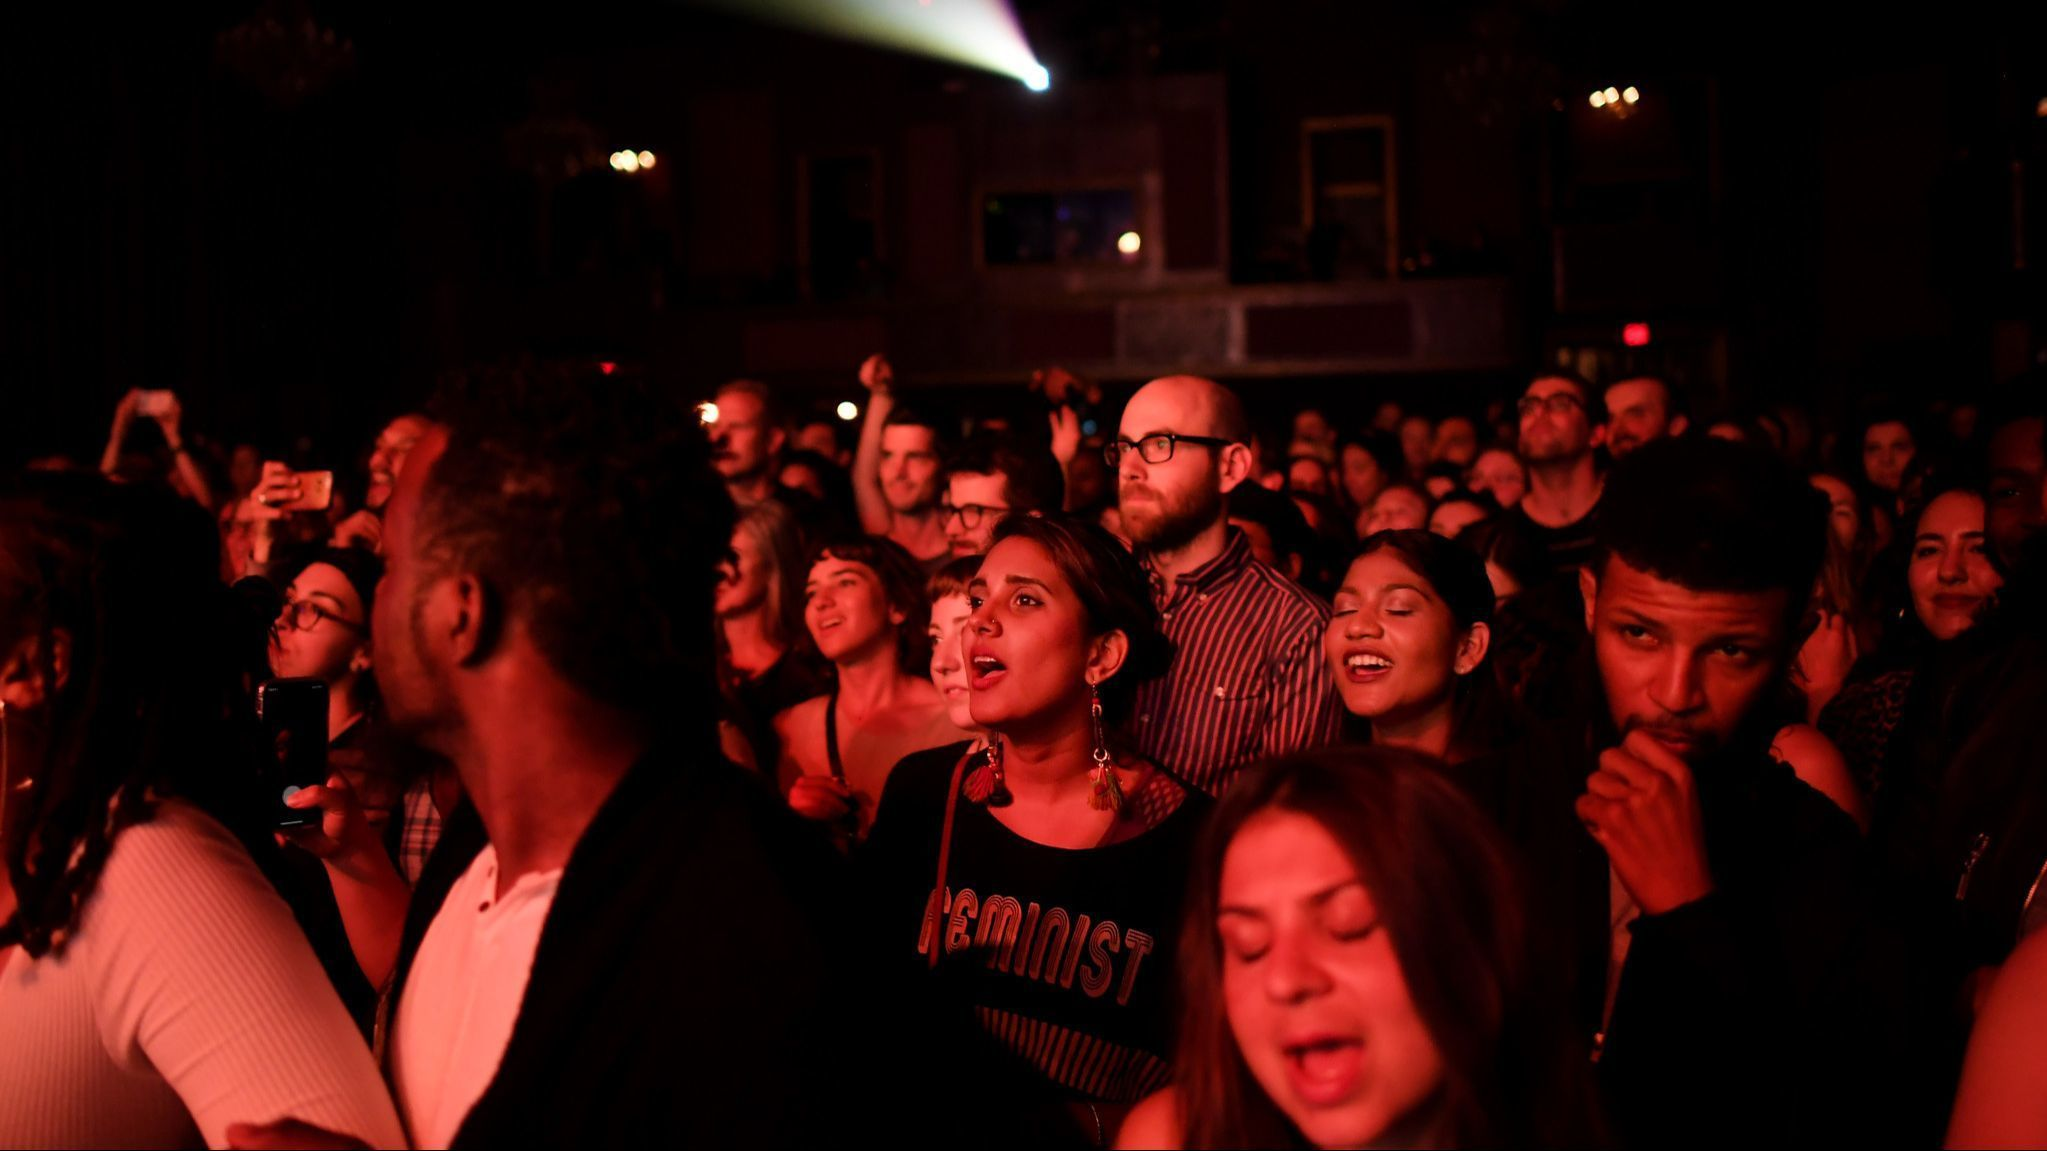 Fans enjoy a concert at the Fillmore in San Francisco.